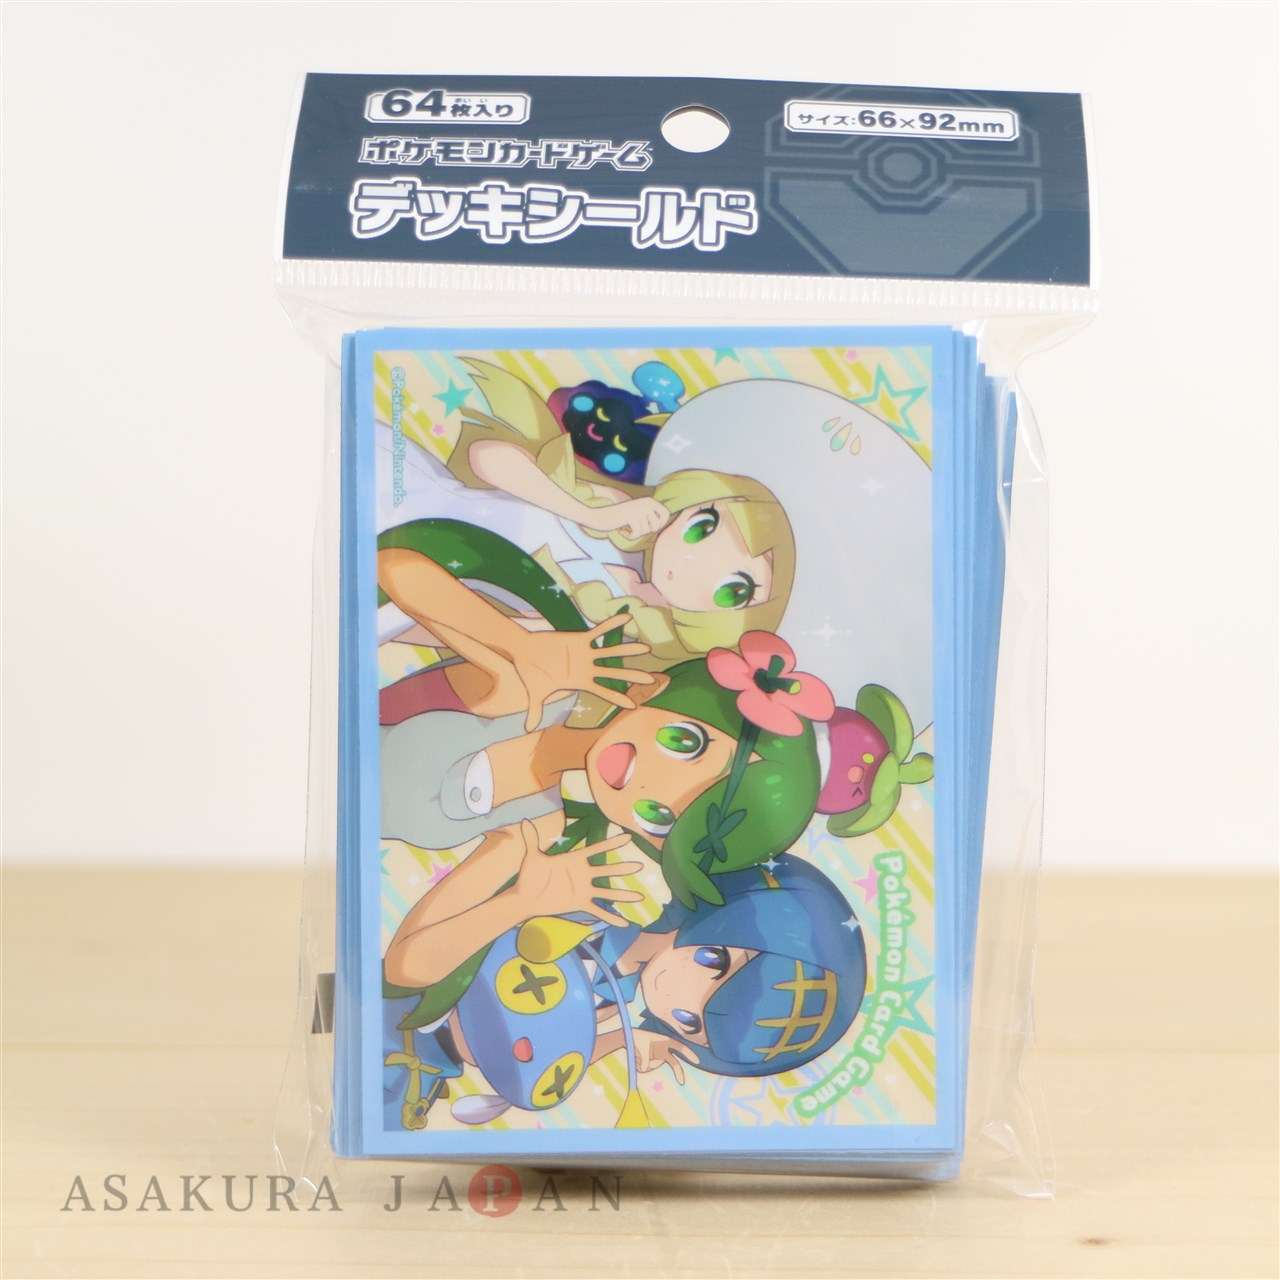 POKEMON CENTER 2018 LILLIE MALLOW LANA SET OF 64 DECK SLEEVES Sealed Sleeves and